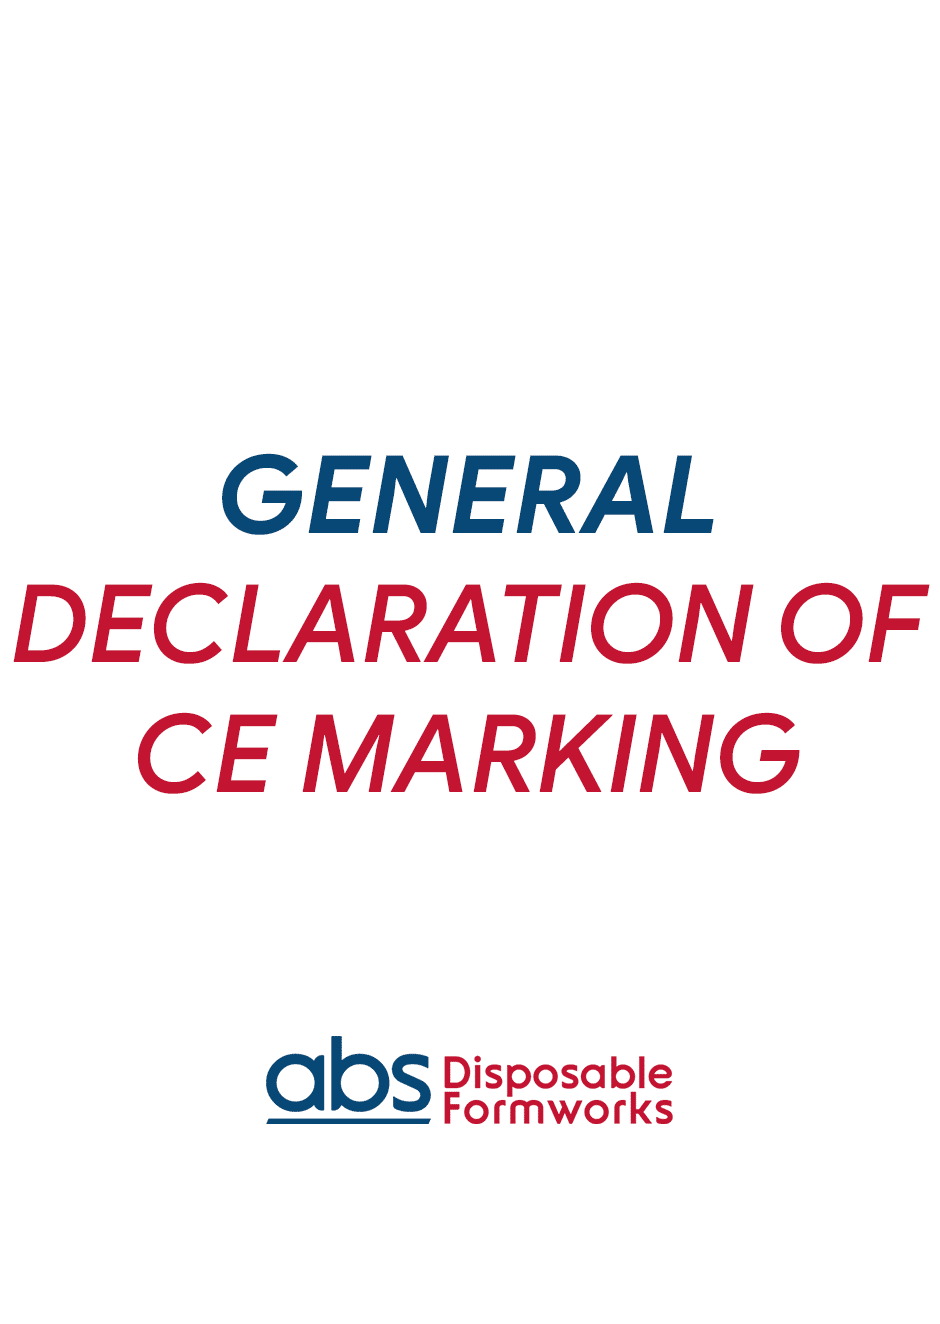 GENERAL_DECLARATION_OF_CE_MARKING